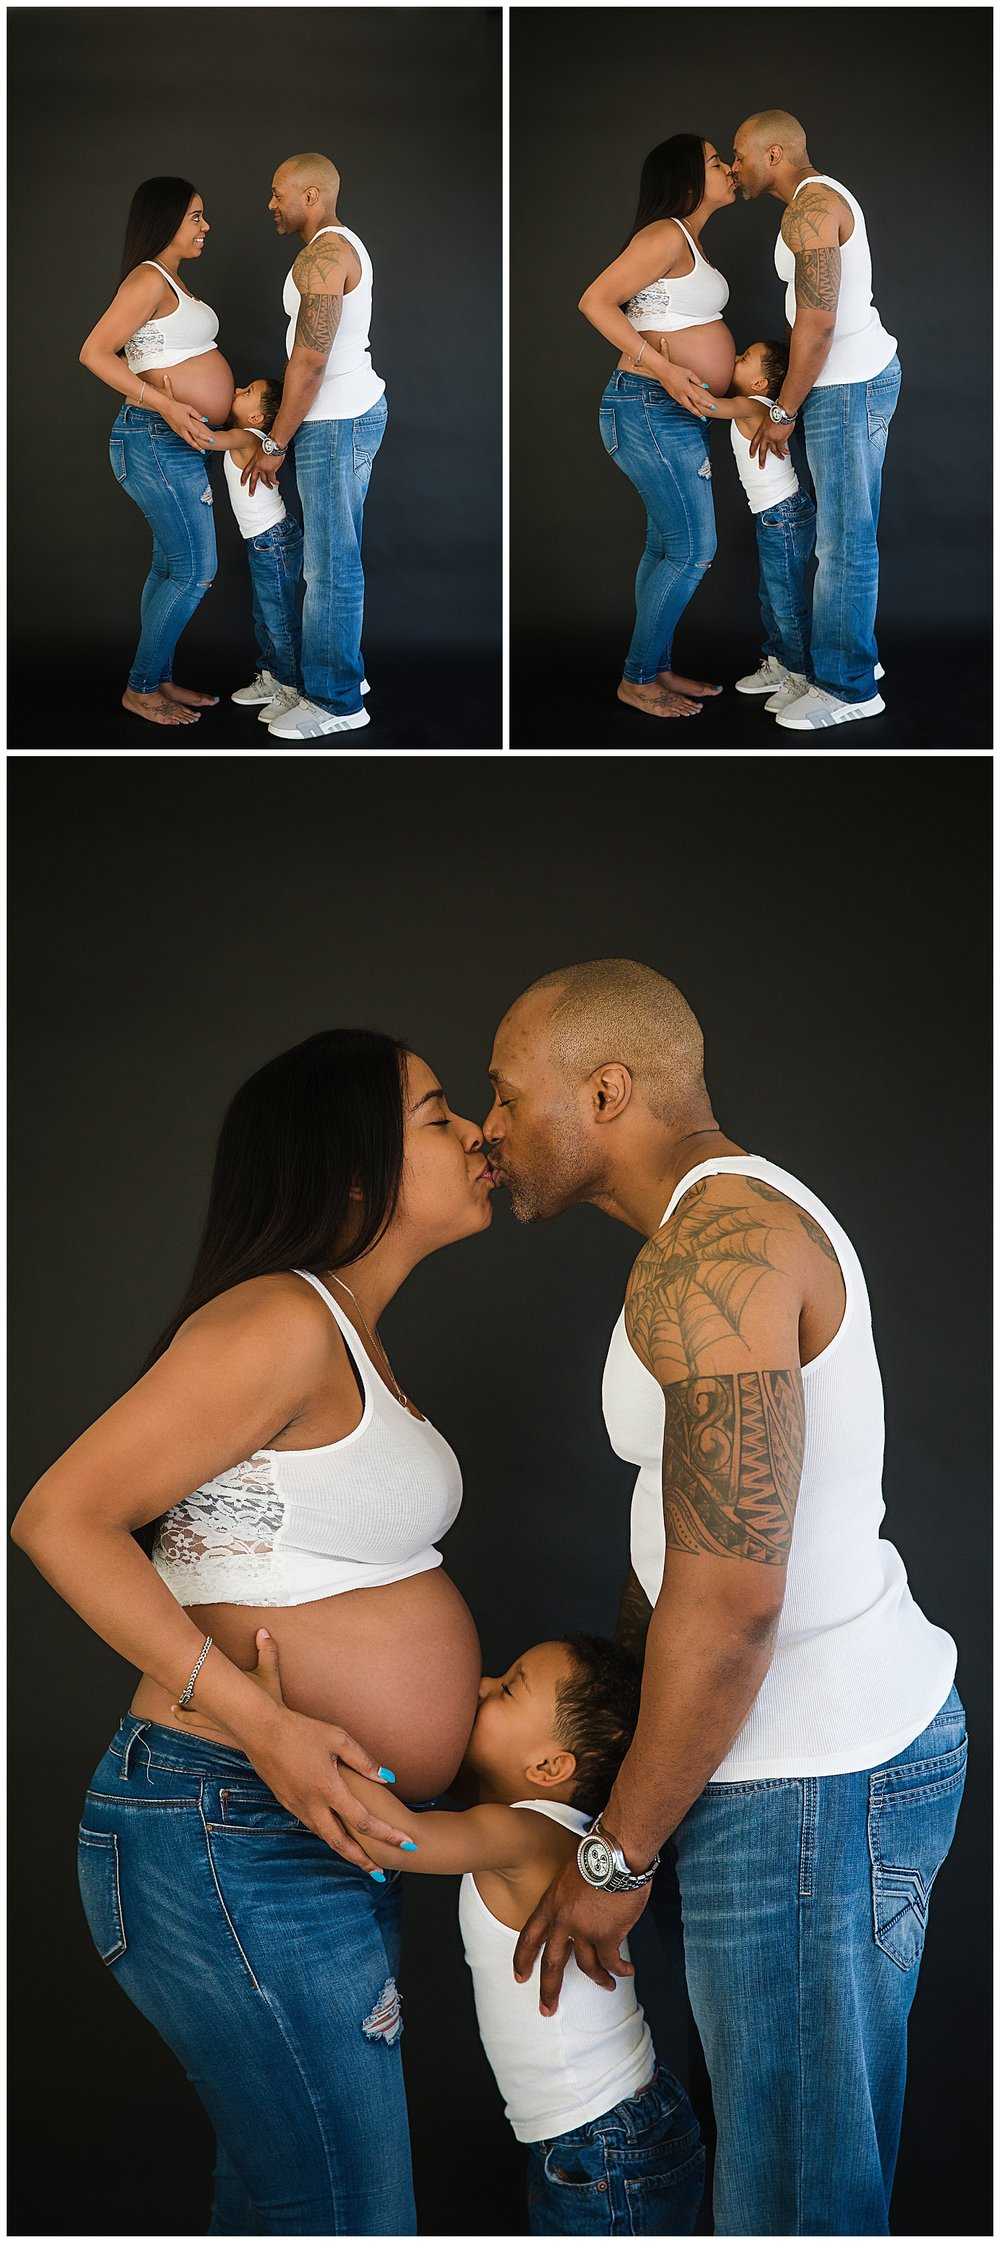 In Studio Black Couple Burlington New Jersey Maternity Photos Wearing White Shirts And Blue Jeans